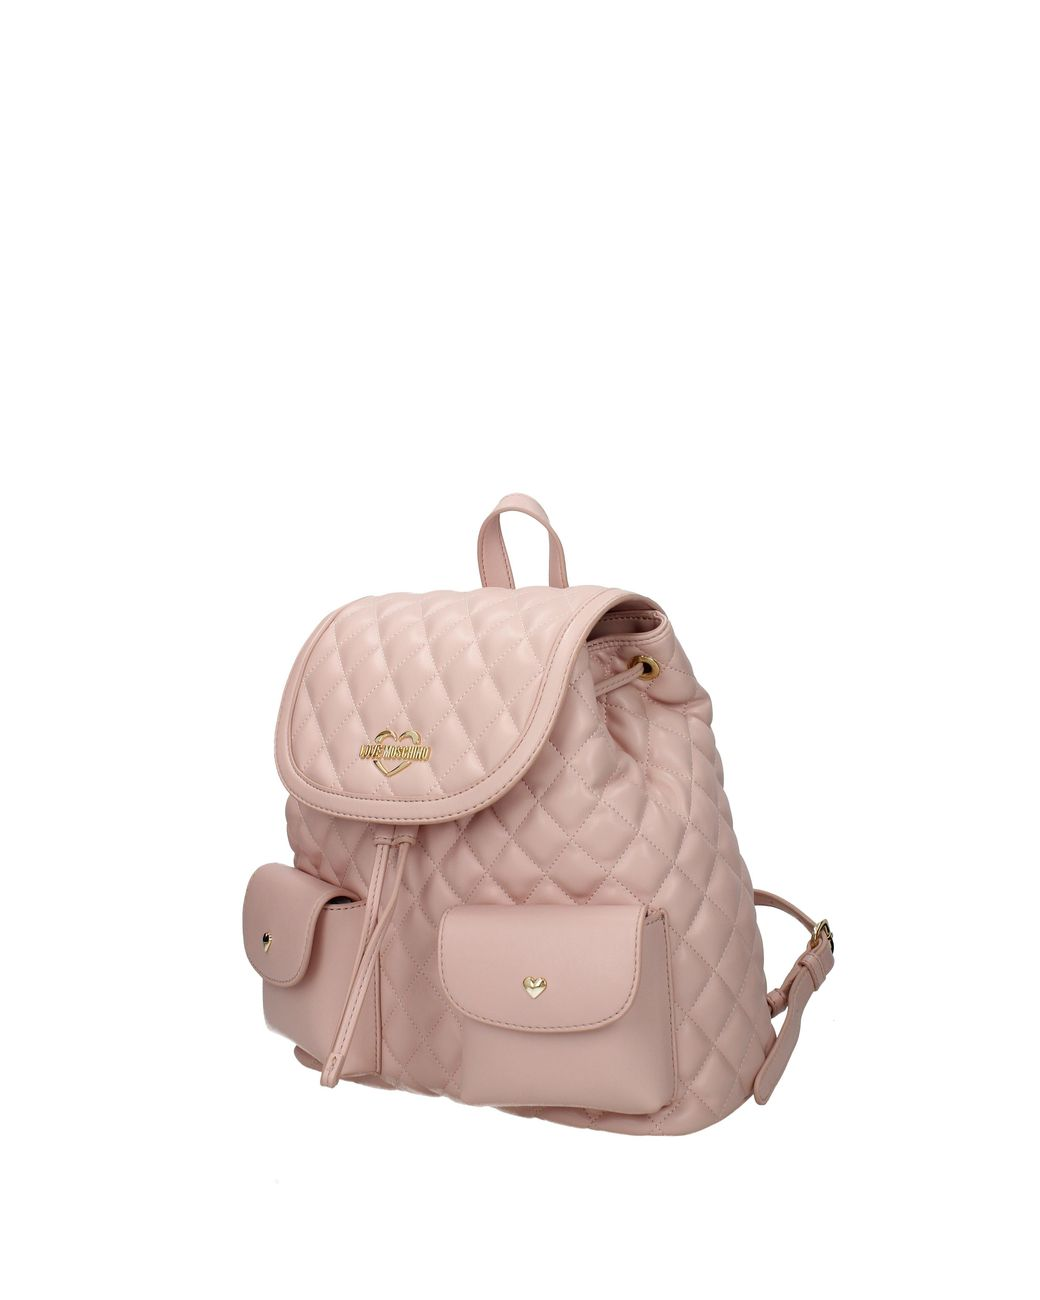 8788a1616f2 Lyst - Love Moschino Backpacks And Bumbags Women Pink in Pink